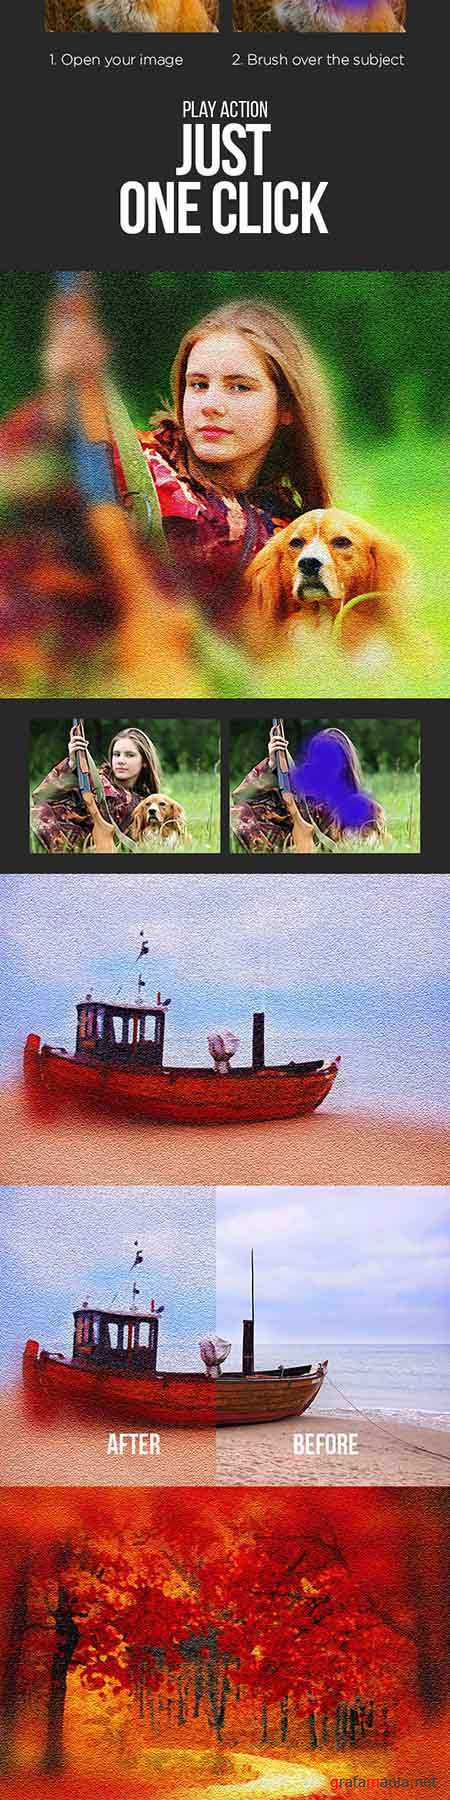 GraphicRiver - Oil Painting Photoshop Action 19175001